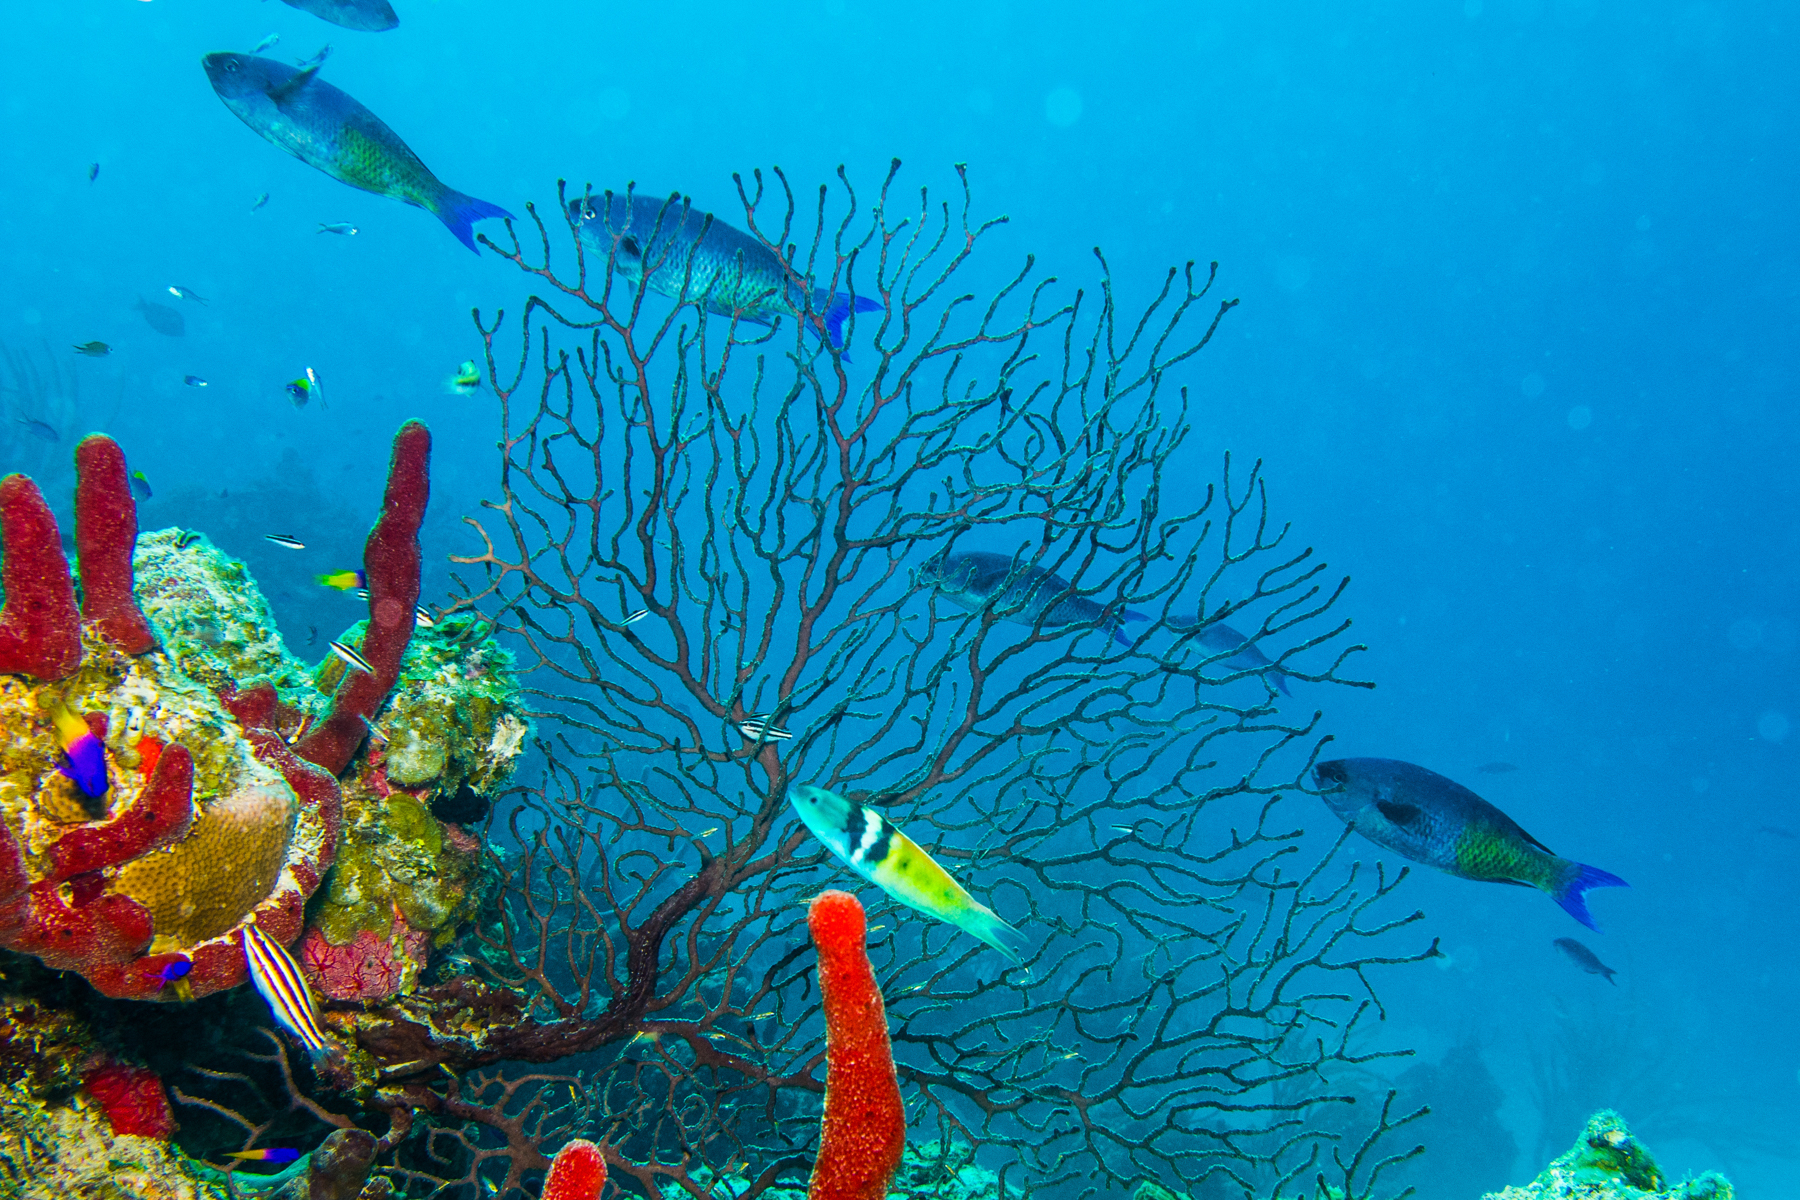 An underwater view of gorgonian in the Caribbean Sea